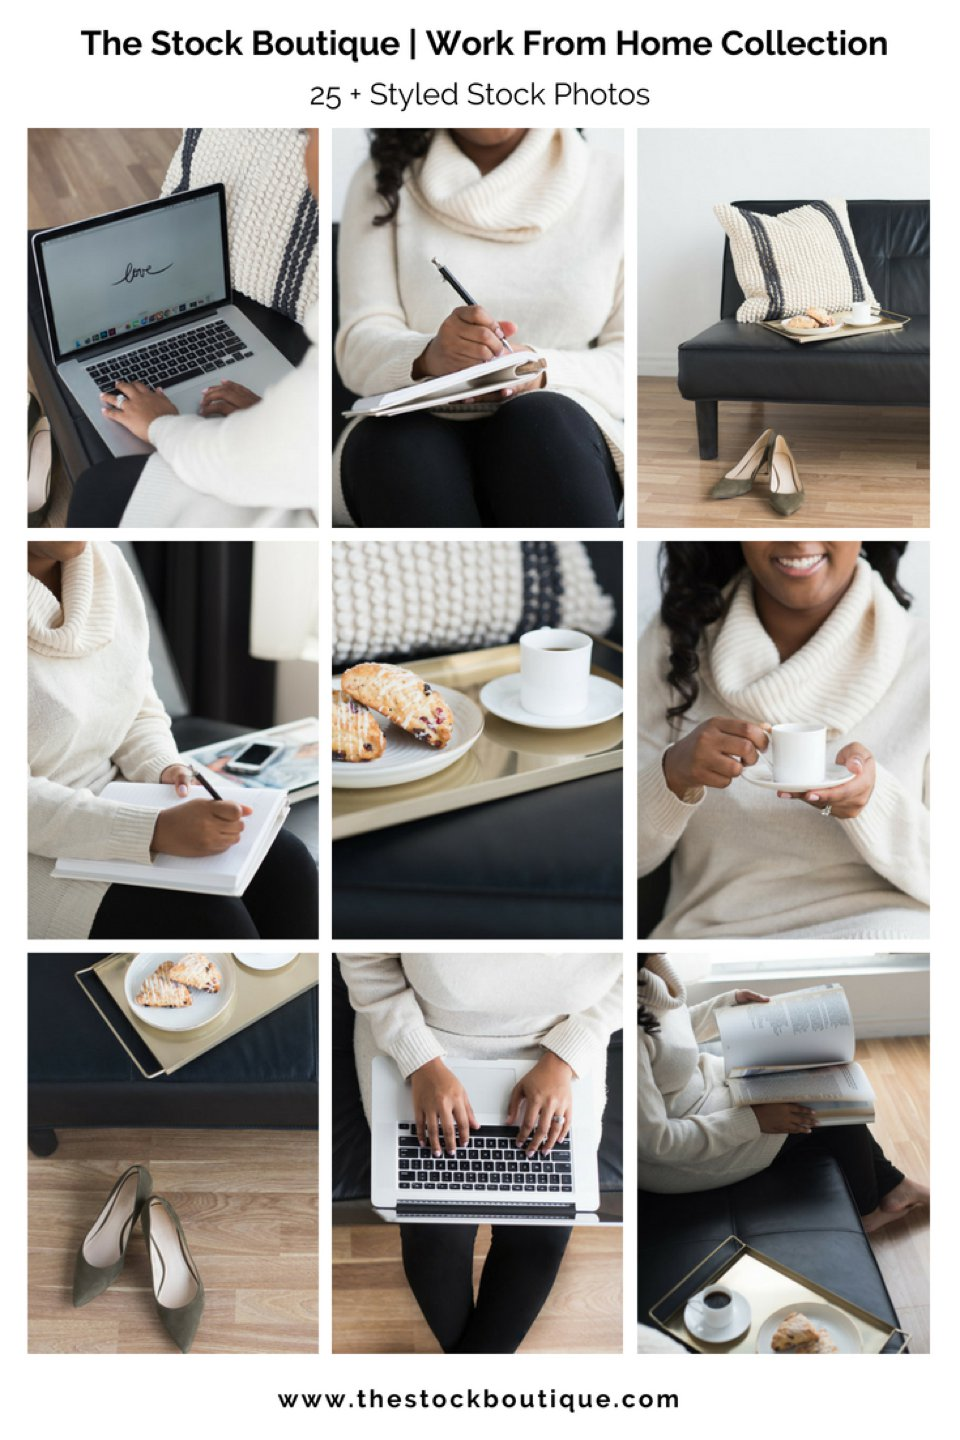 We are excited to be launching a new styled stock collection this week! Our Work from Home collection is full of coziness and our usual girl boss style! We giveaway free stock photos when you subscribe www.thestockboutique.com! #styledstockphotography #stockphotobundle #stockphotomembership #thestockboutique #freestockphotos